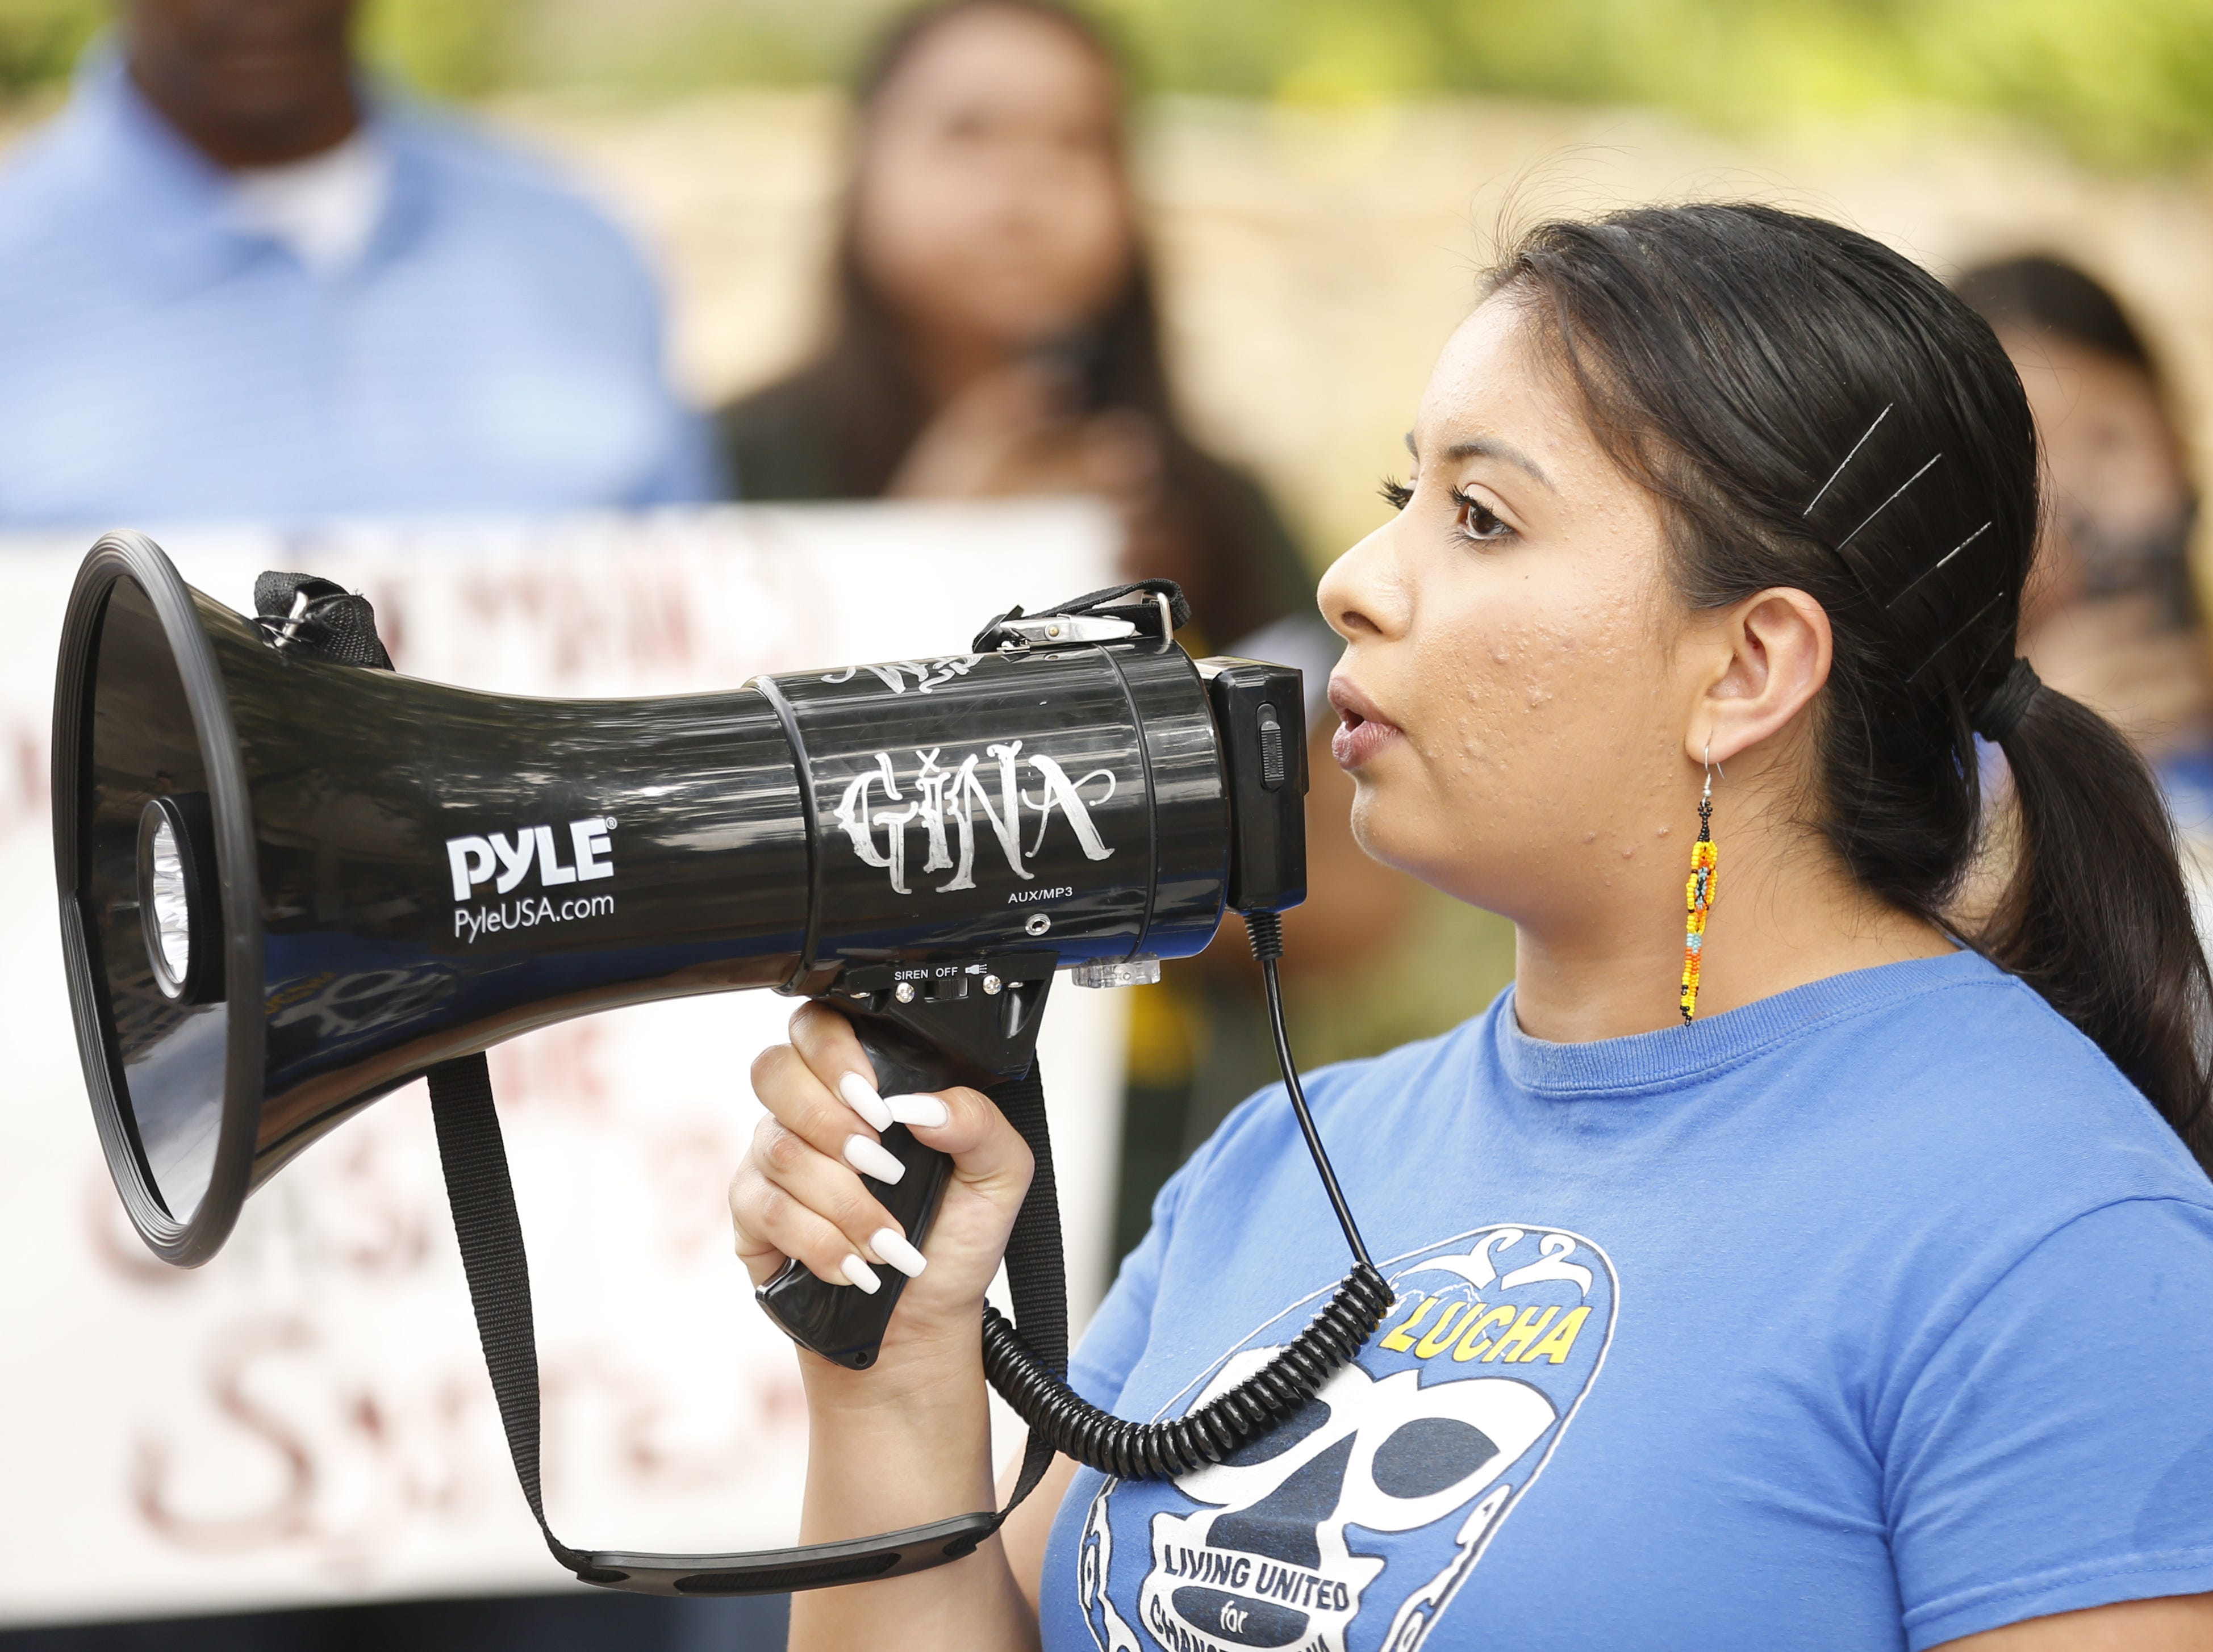 Astrid Pizarro, mass liberation organizer for LUCHA, speaks during a protest against cash bail at the Maricopa County Attorney's office in Phoenix on May 9, 2019.